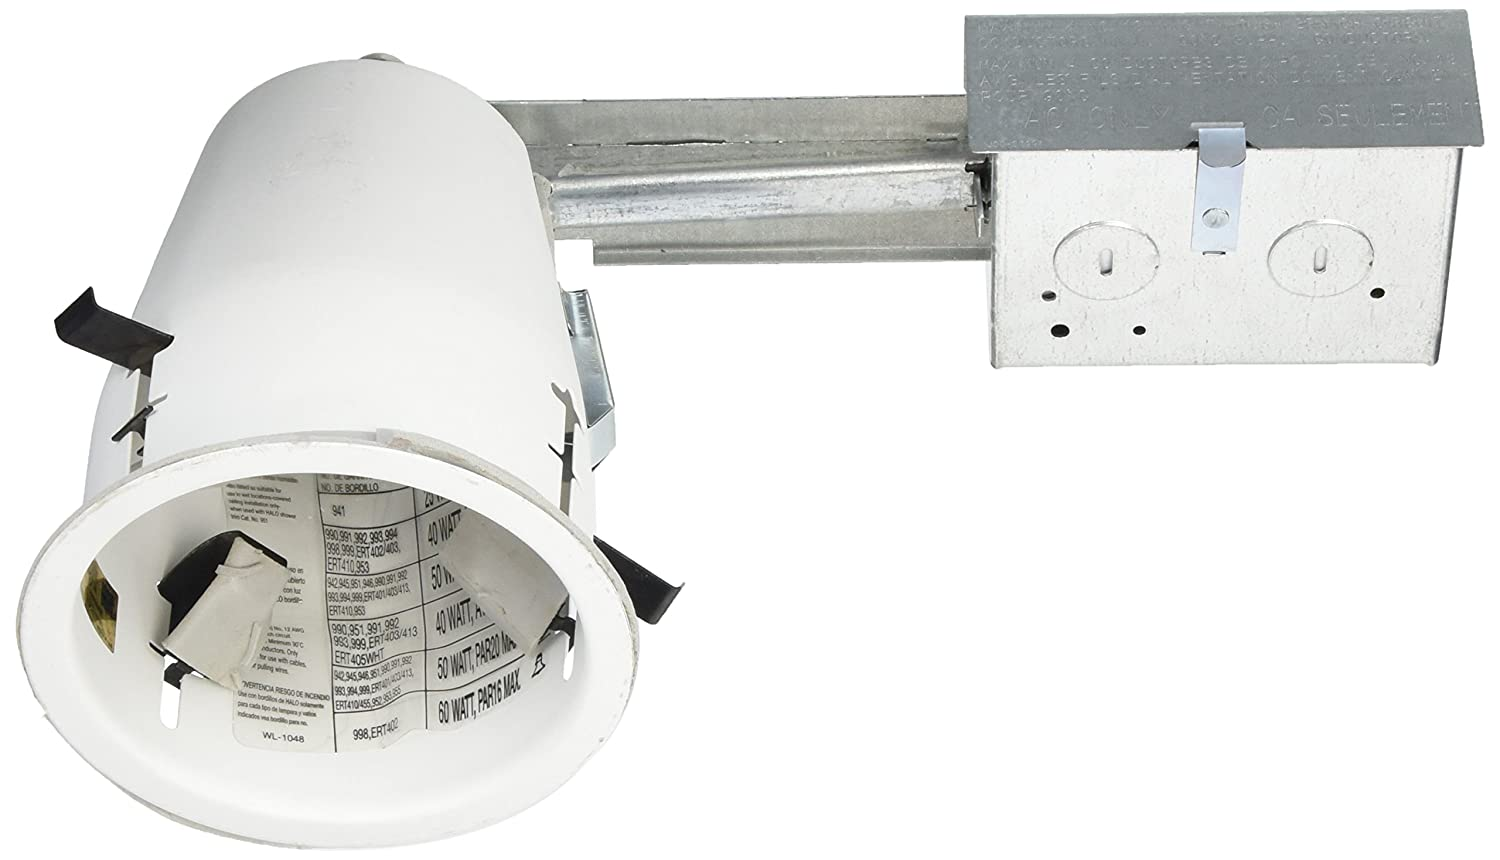 HALO H99RTAT 4 Housing Non-IC Air-Tite Shallow Ceiling Remodel 120V Line Voltage 4 Housing Non-IC EATON